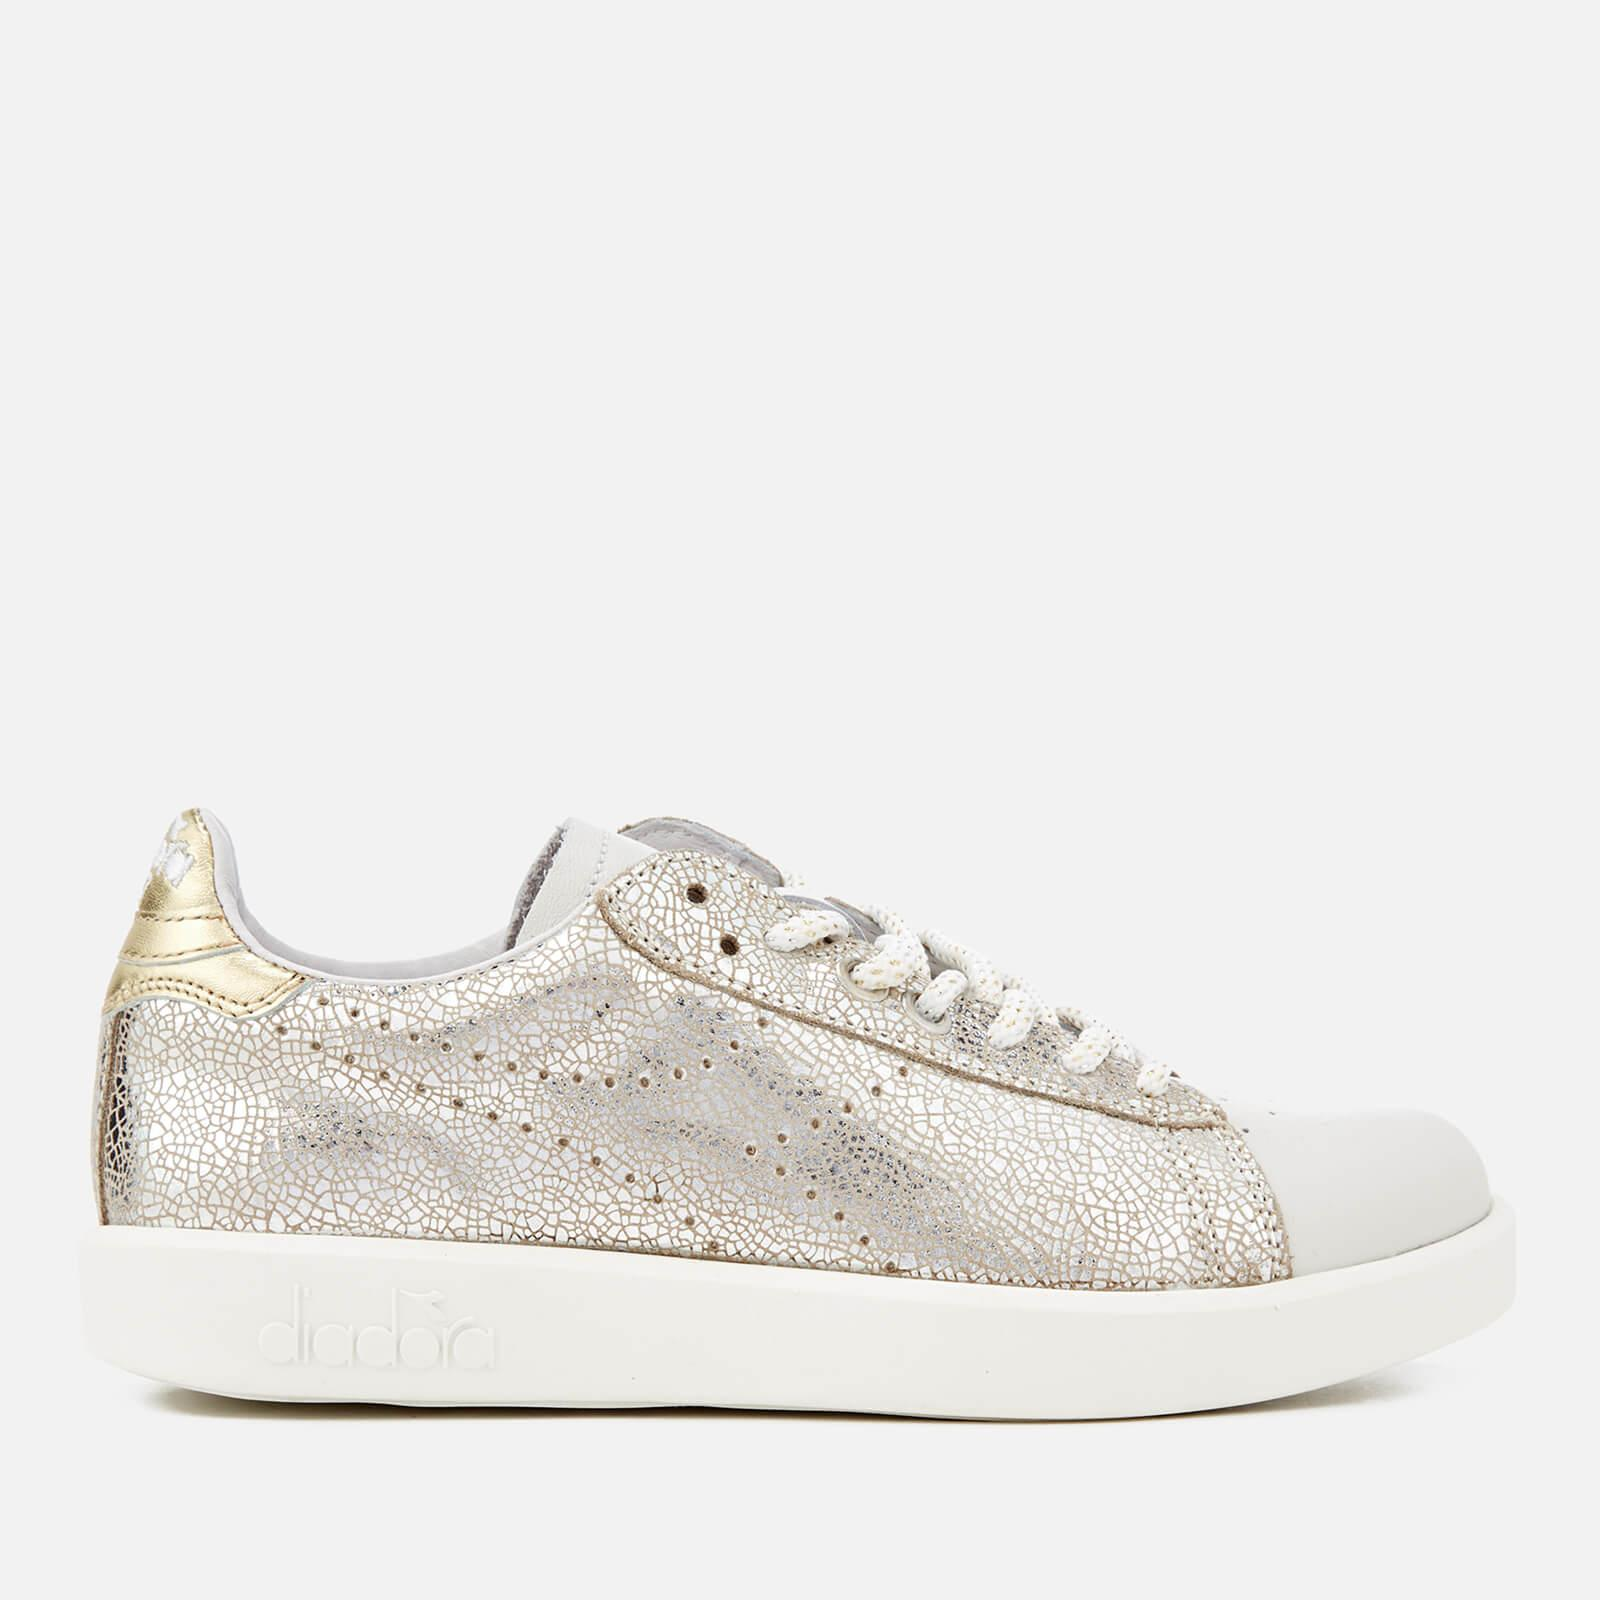 GAME H W SILVER PACK - FOOTWEAR - Low-tops & sneakers Diadora Online Shopping 8gyBcyaqR5